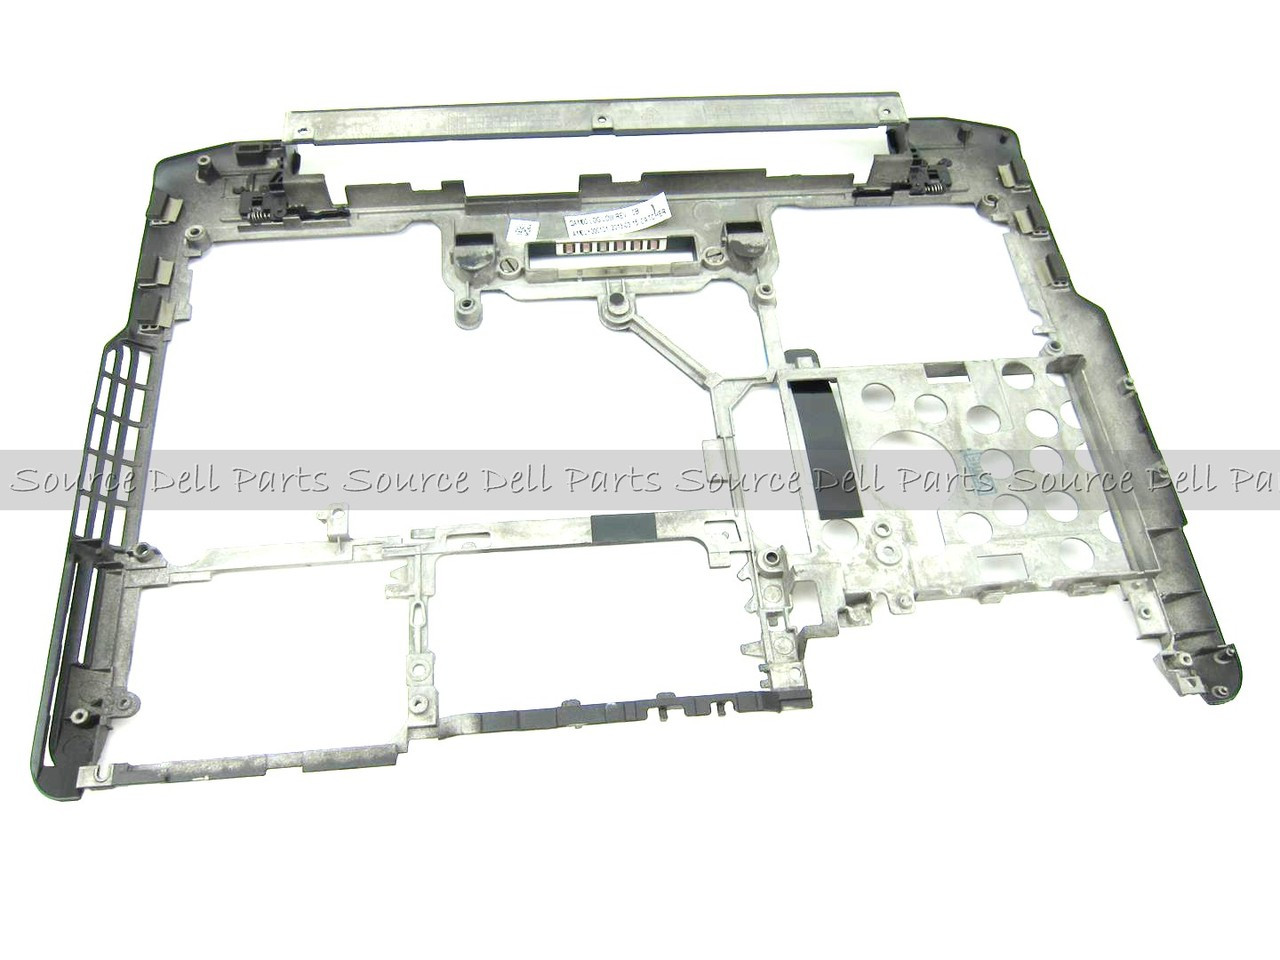 Dell Latitude E6230 Laptop Bottom Base Assembly - V0RJV